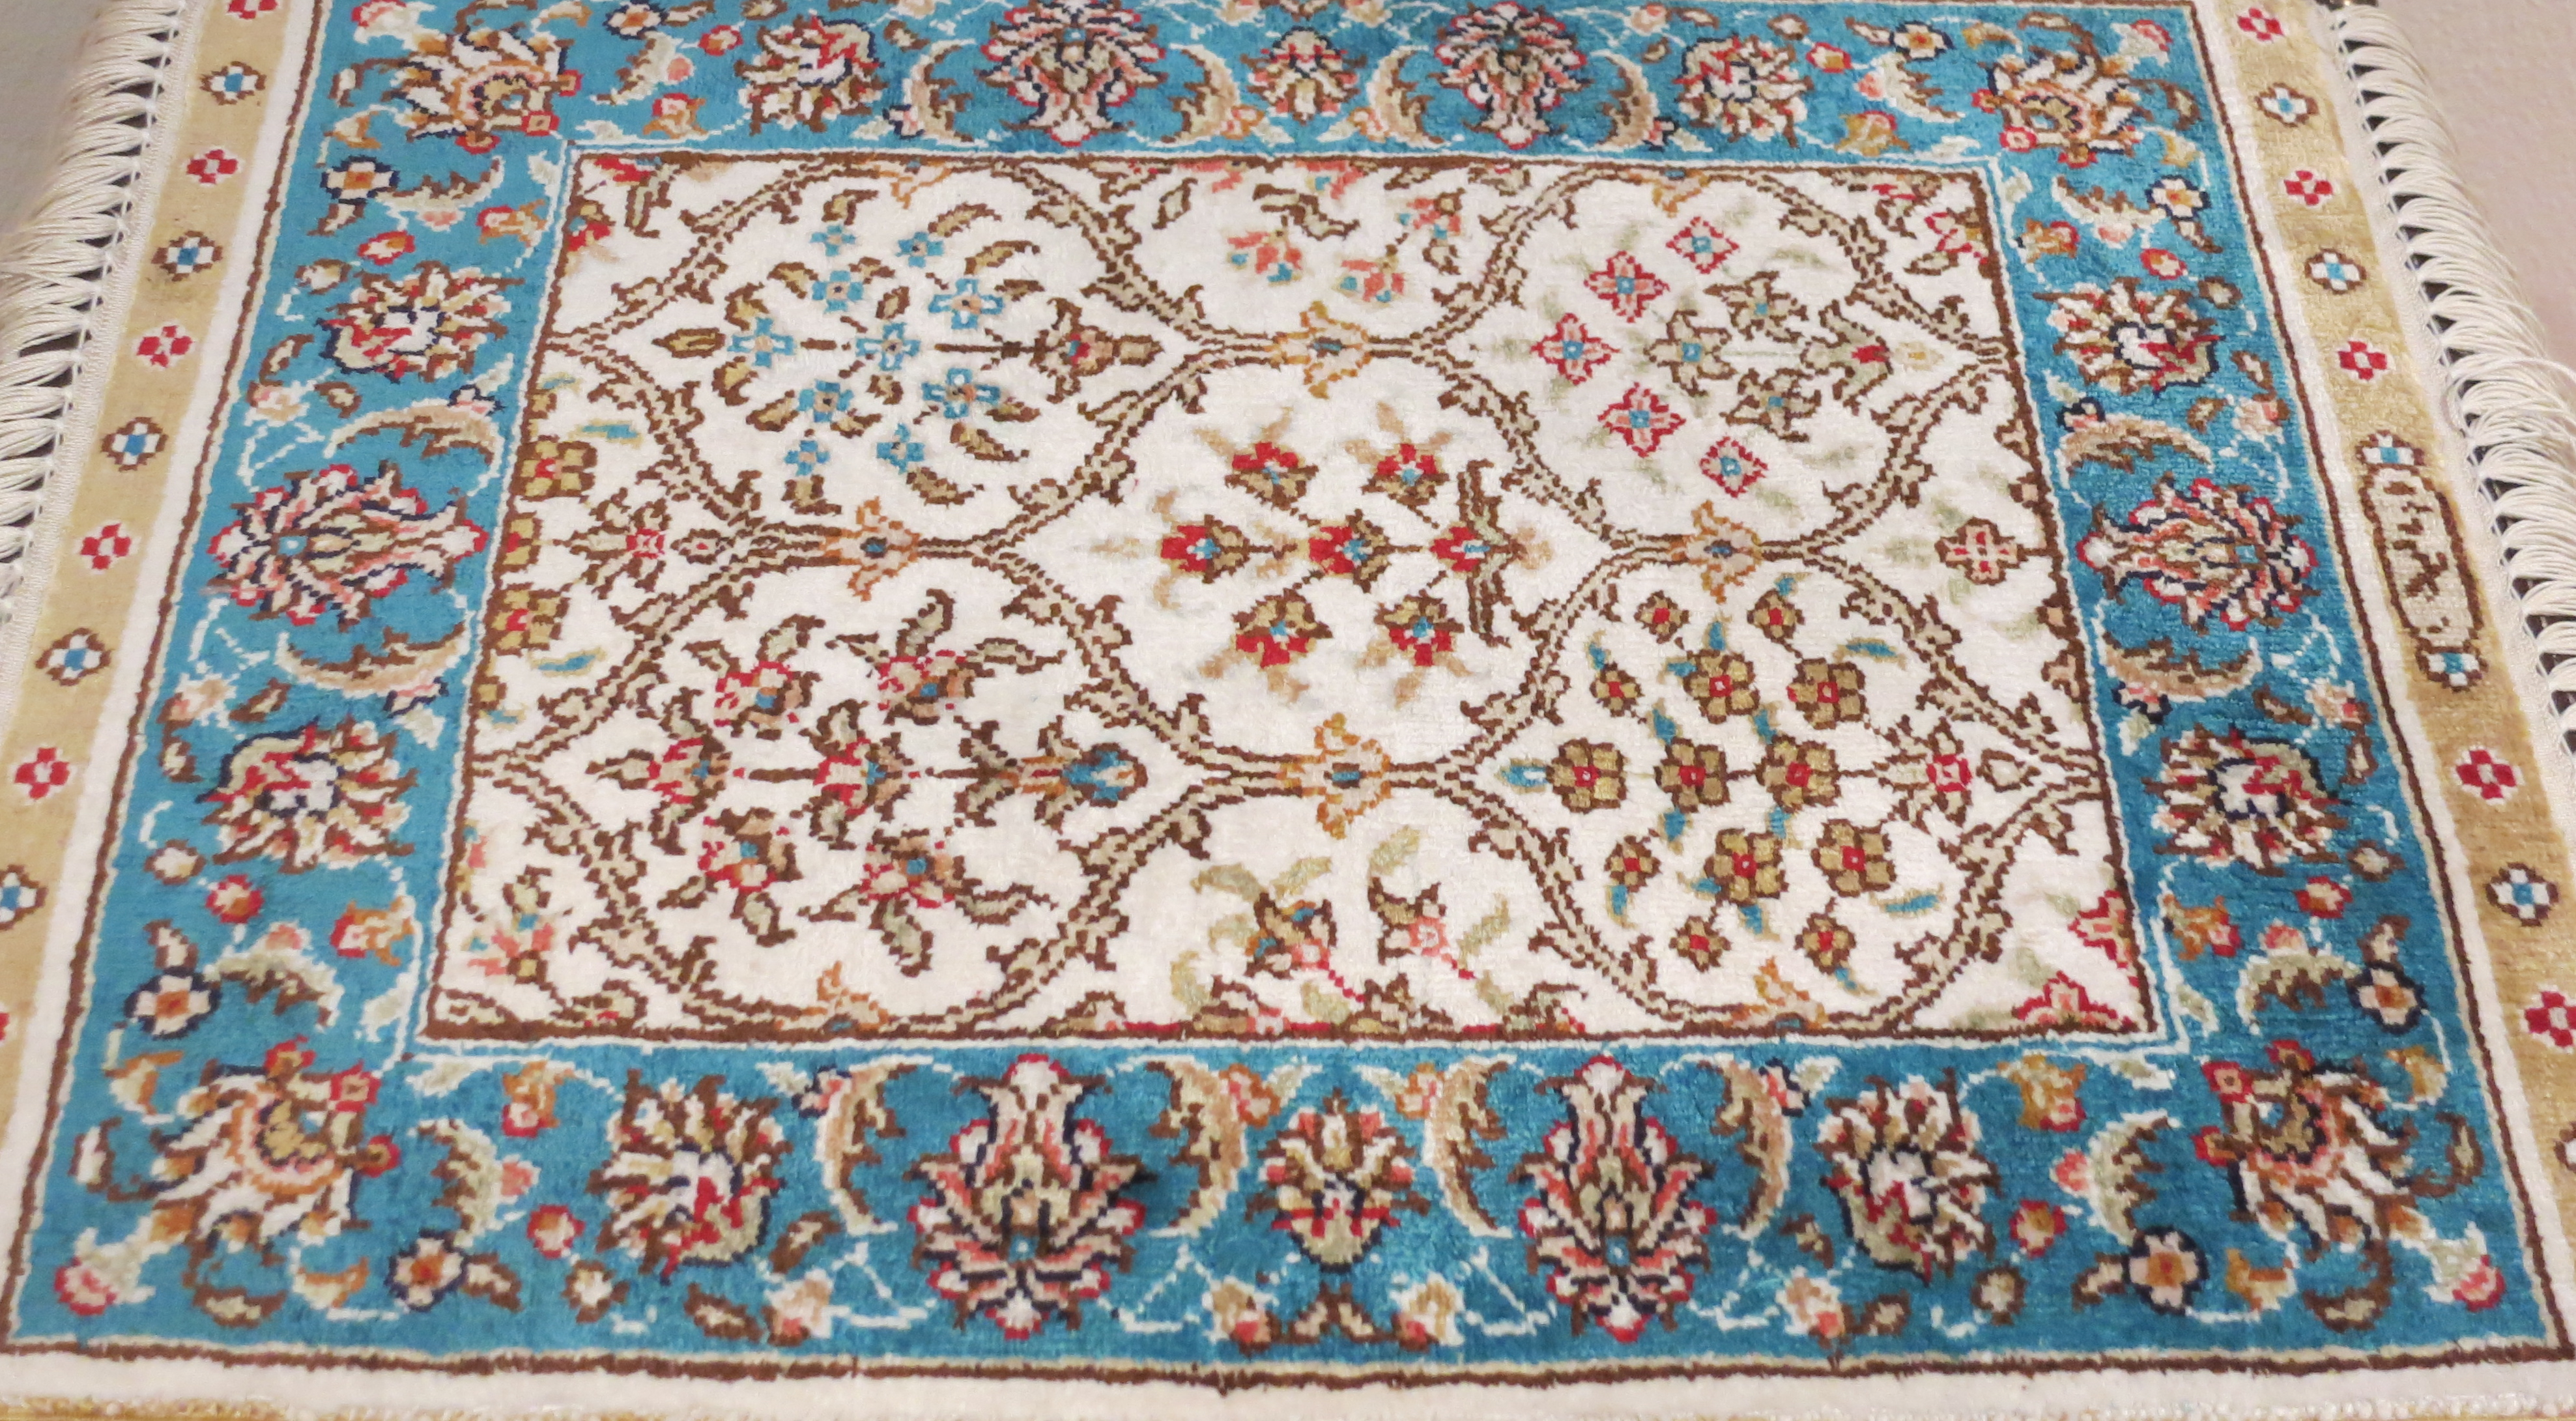 buying a turkish rug genuine or not wise monkeys abroad